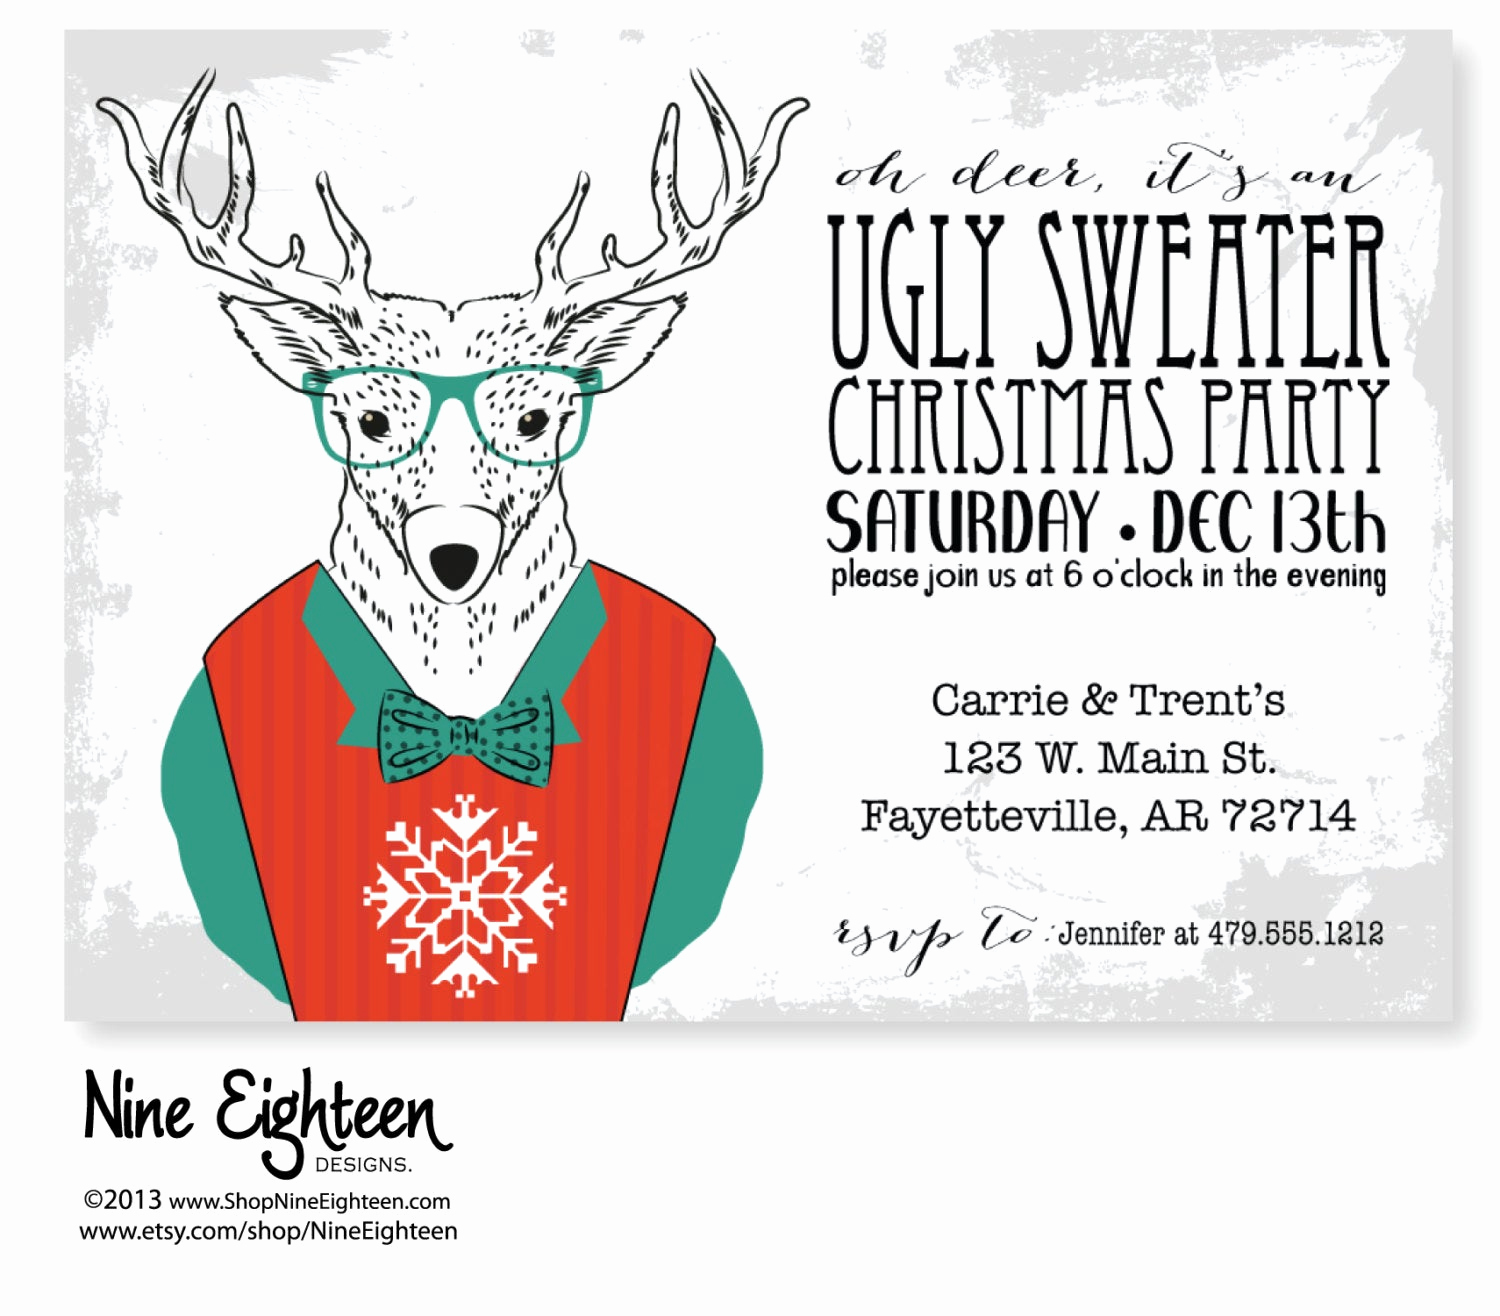 Ugly Sweater Christmas Party Invitation New Christmas Invitation for Ugly Sweater Party by Nineeighteen